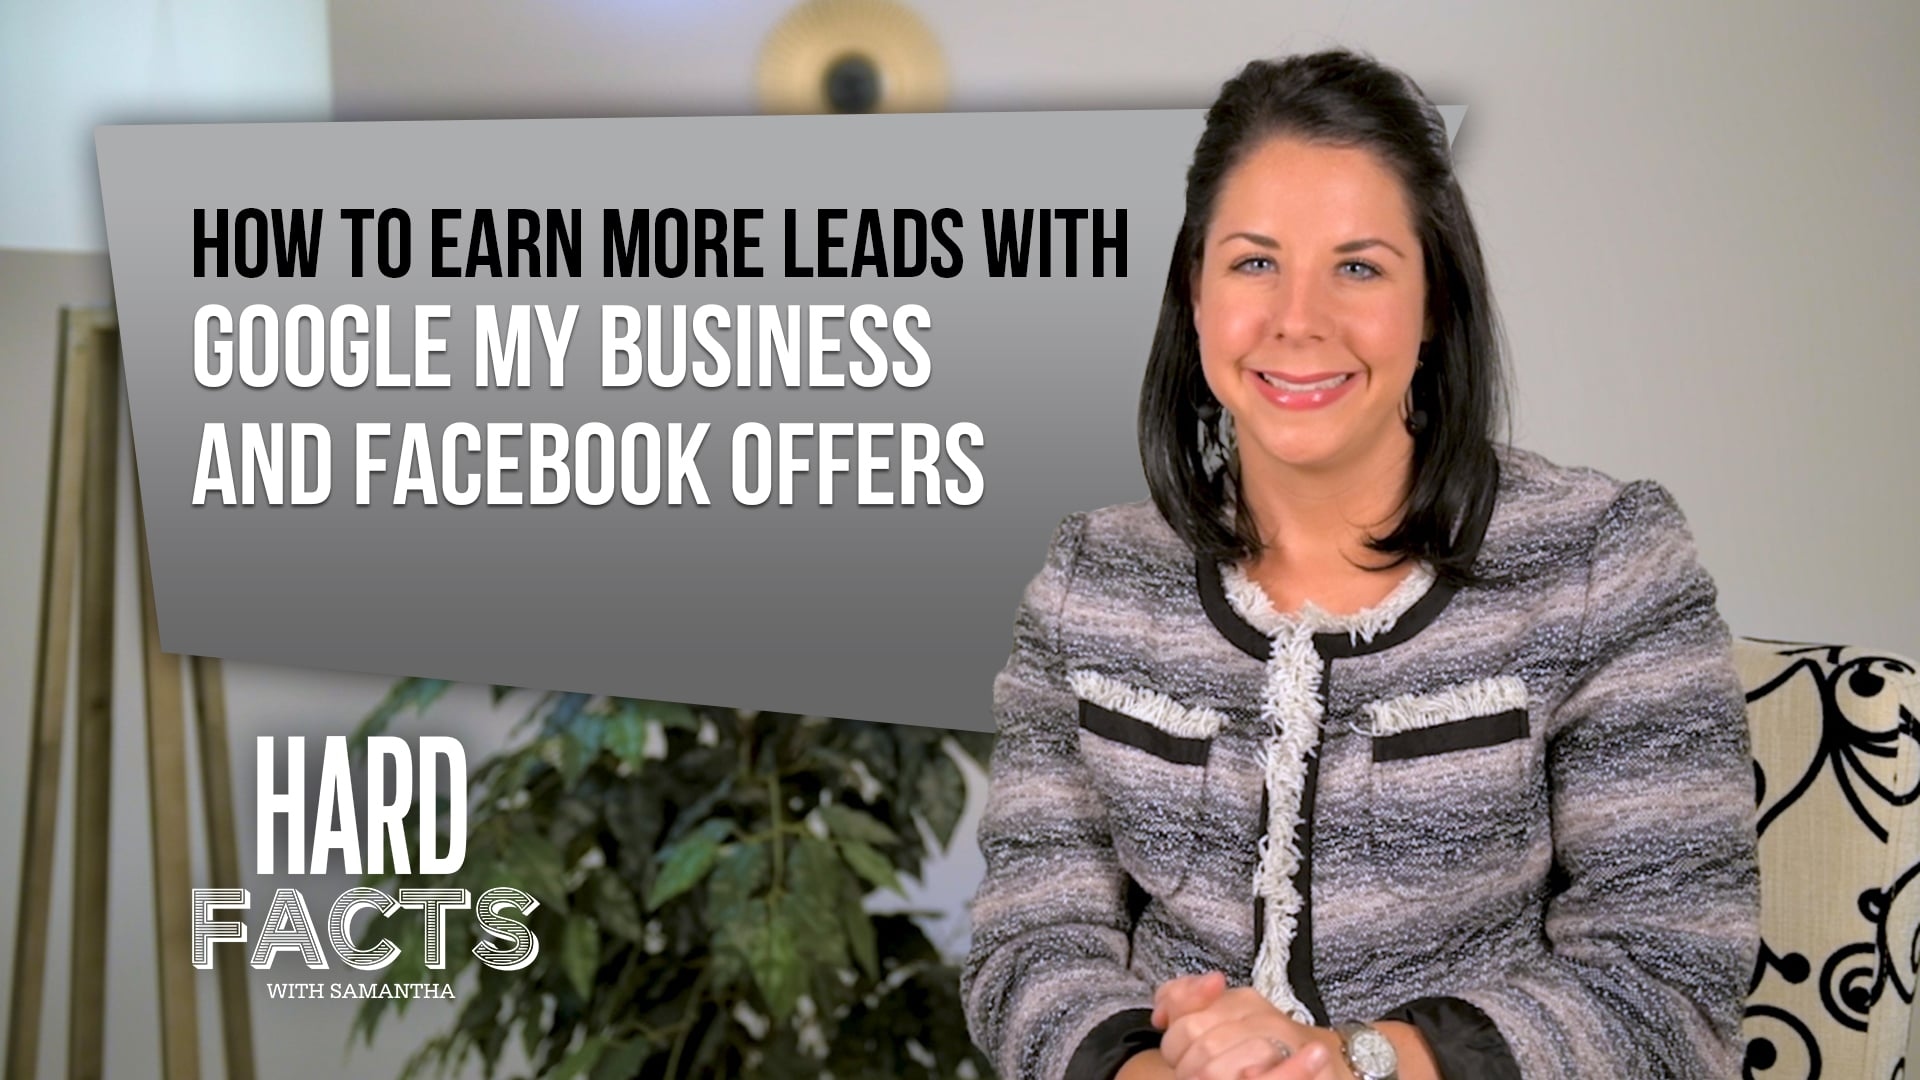 How to Earn More Leads With Google My Business & Facebook Offers